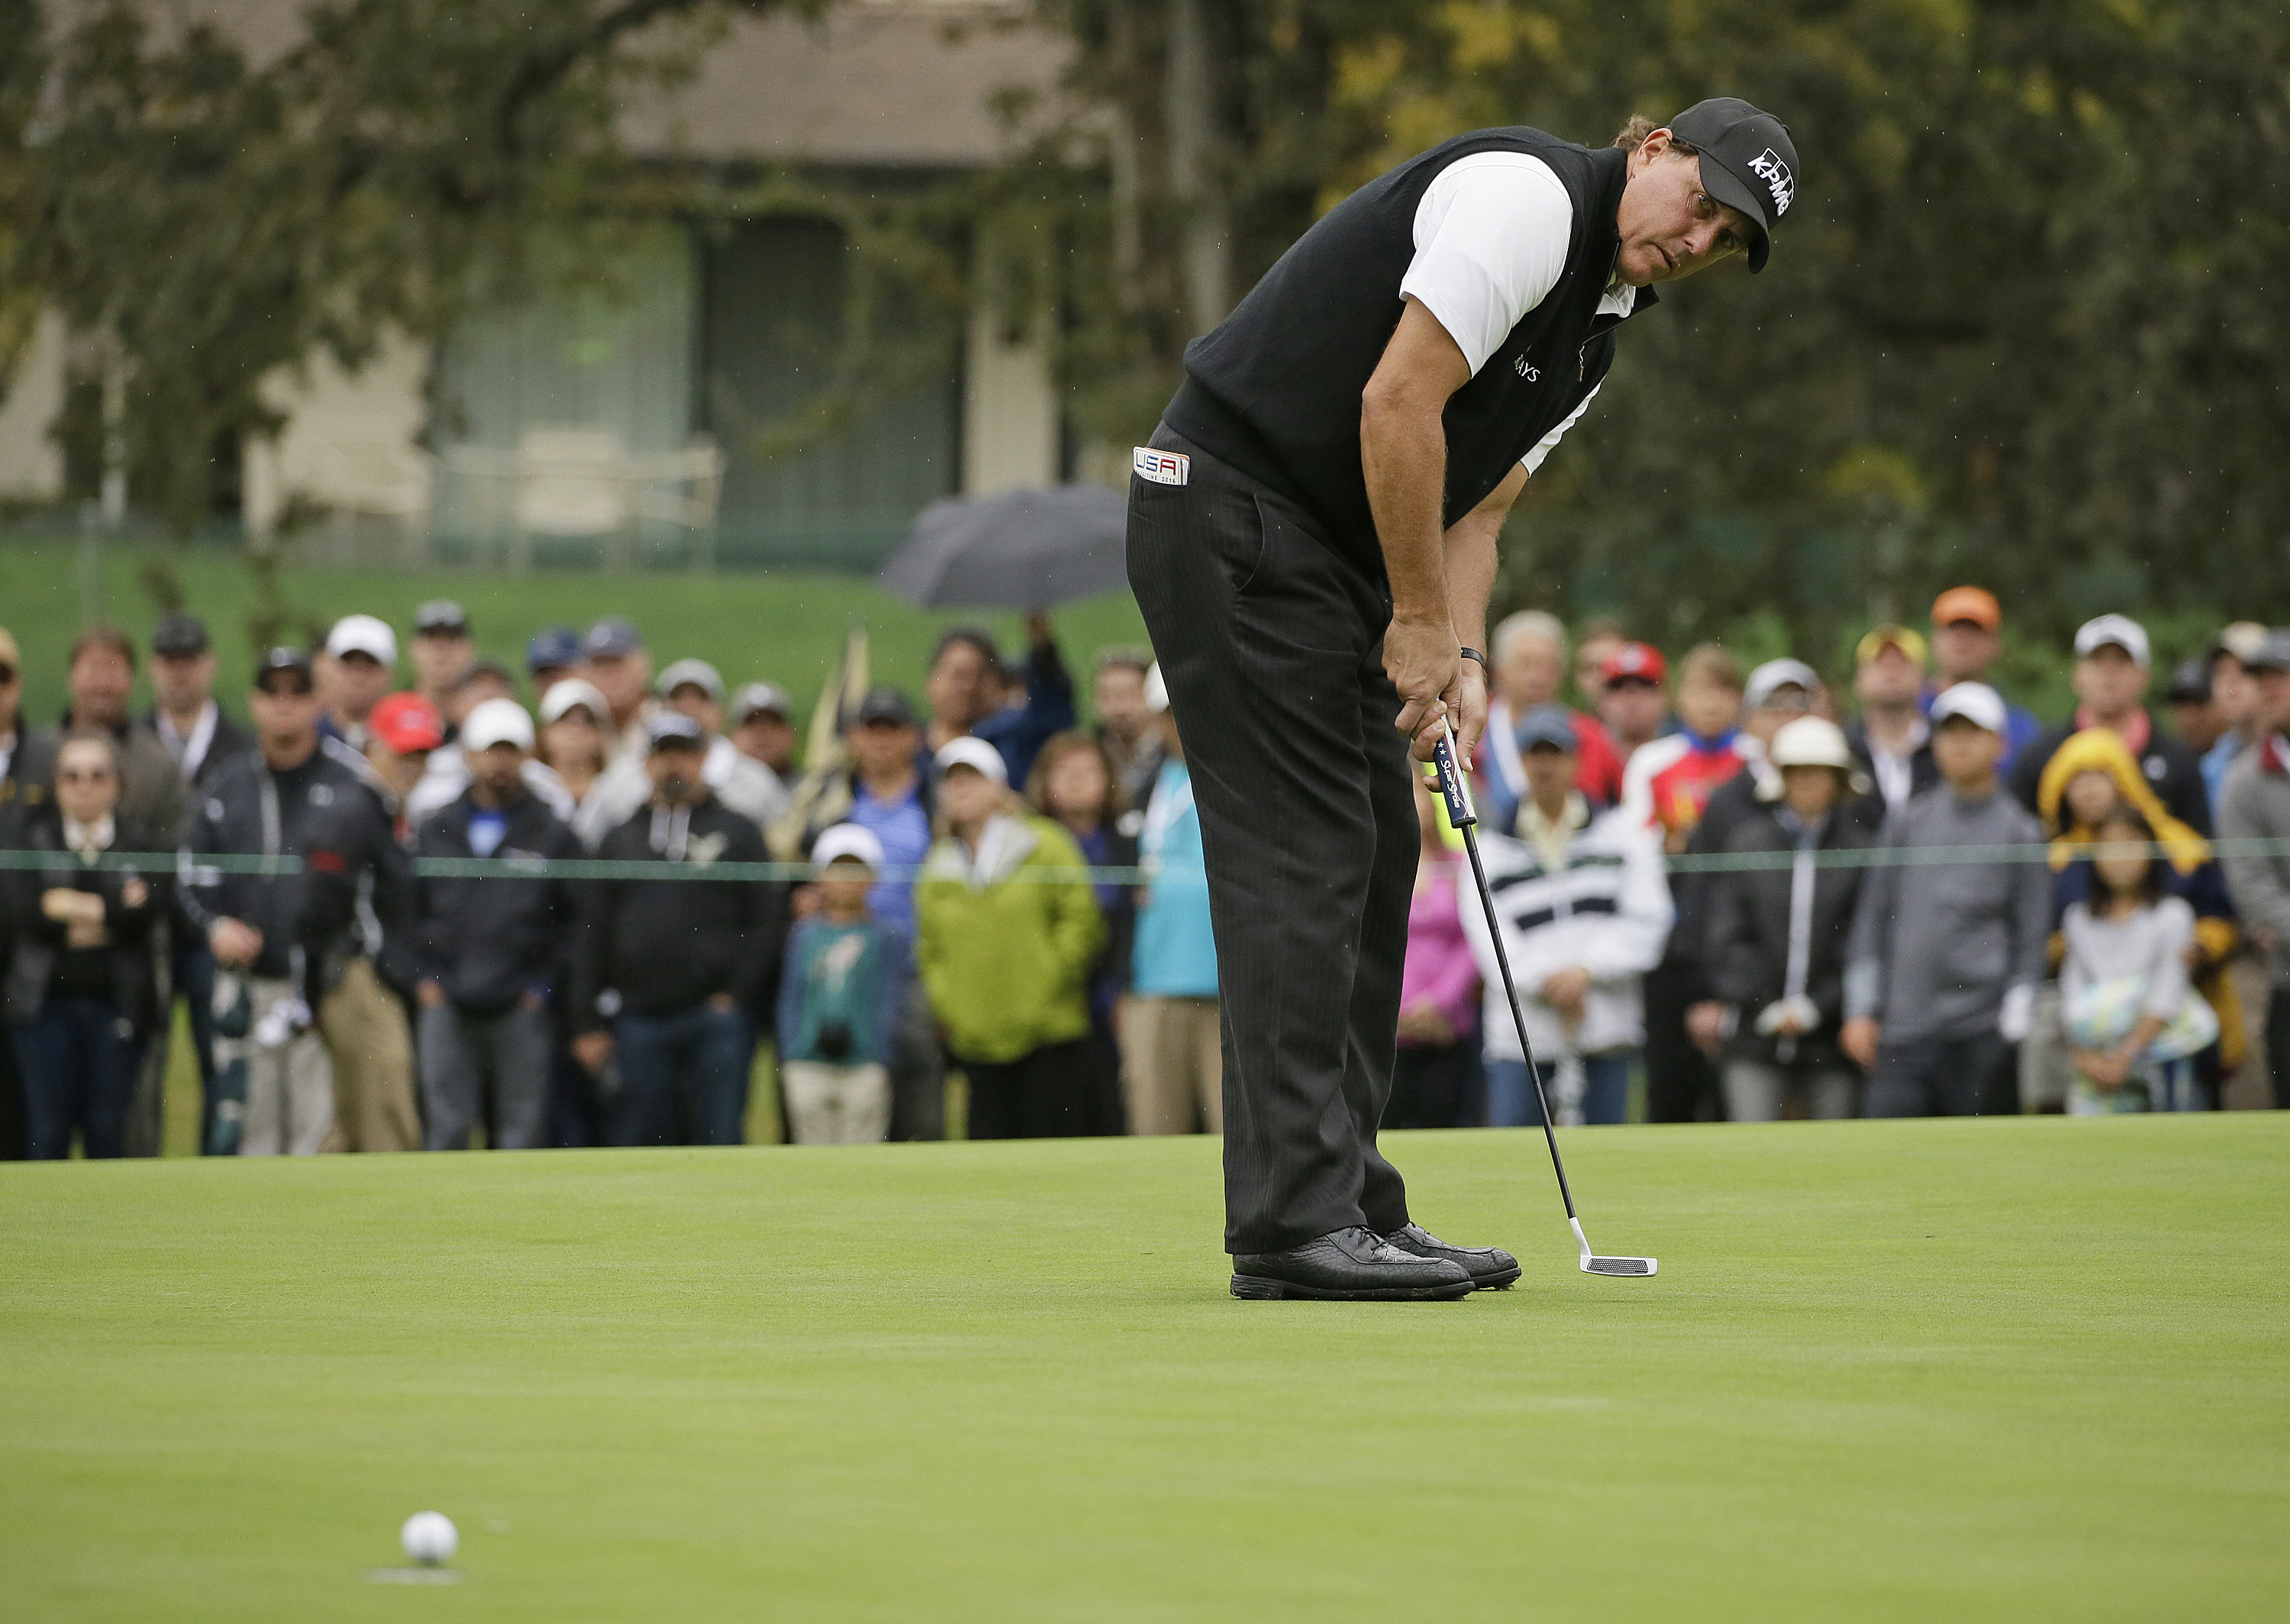 Phil Mickelson makes a birdie putt on the first green of the Silverado Resort North Course during the final round of the Safeway Open PGA golf tournament, Sunday, Oct. 16, 2016, in Napa, Calif. (AP Photo/Eric